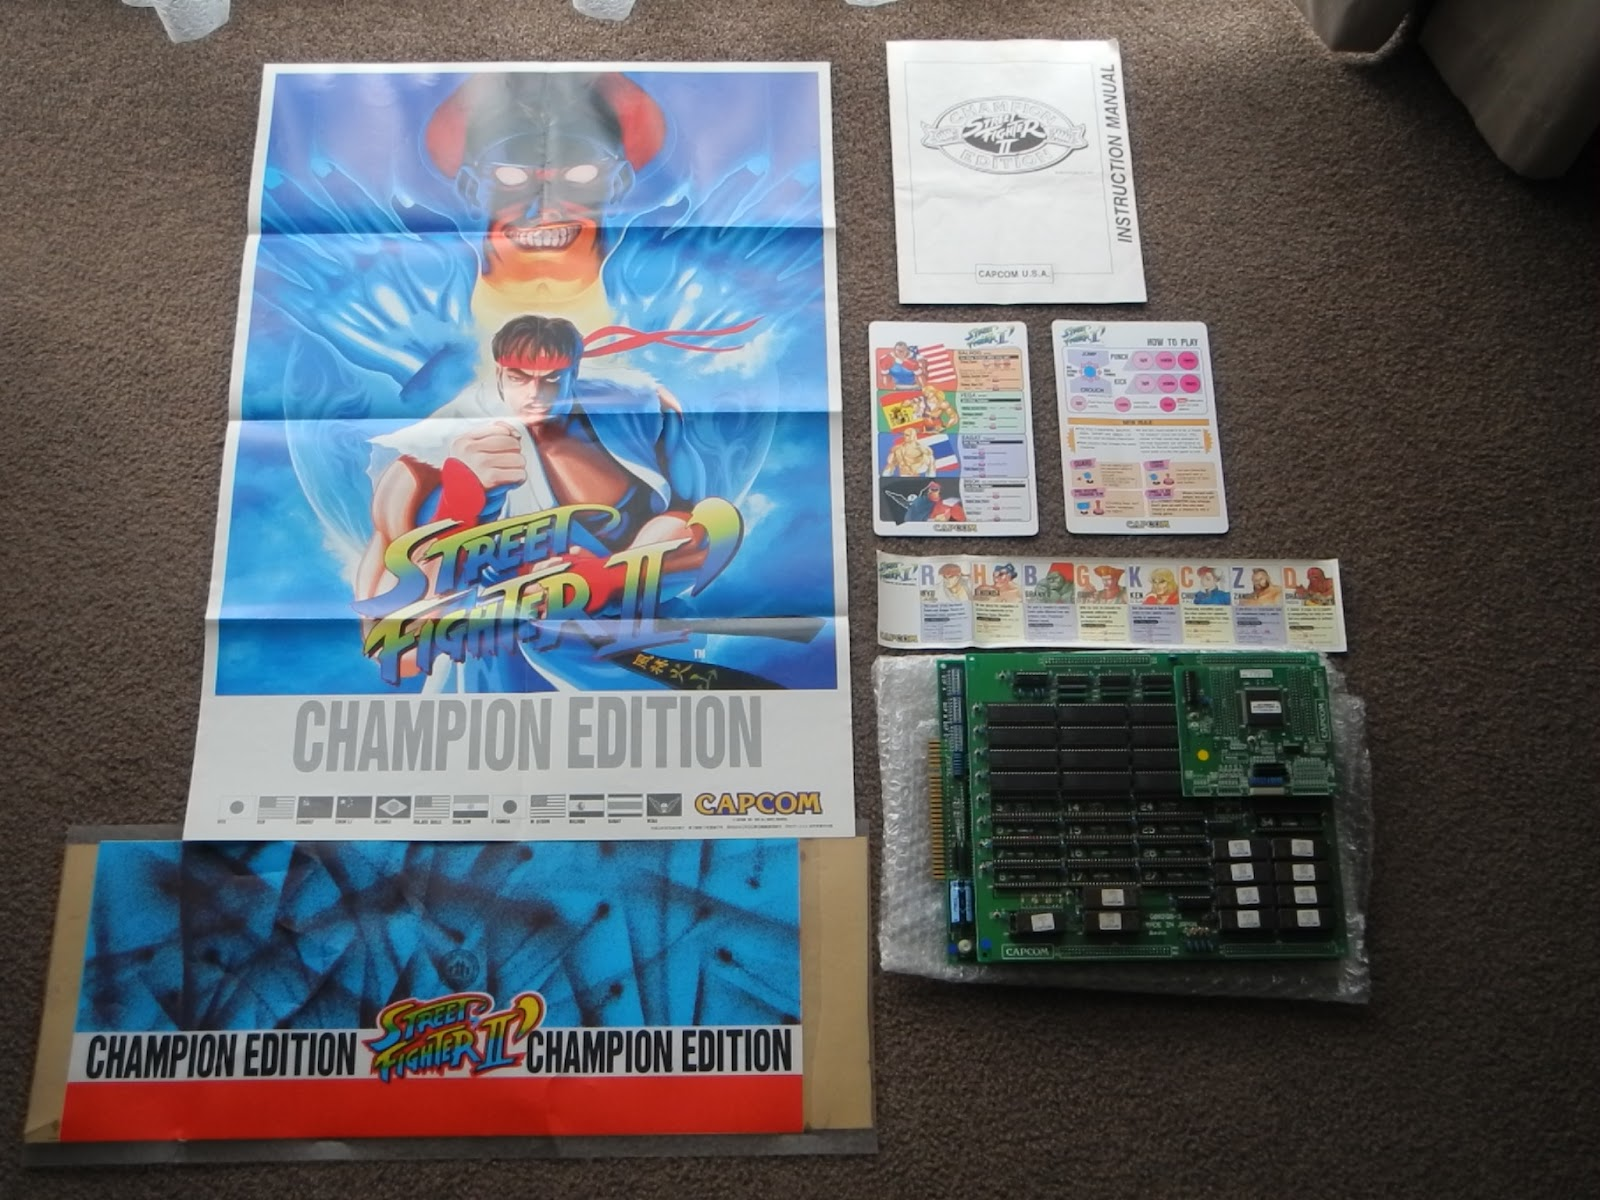 Capcom Addict Cps1 Street Fighter 2 Dash Champion Edition Kit